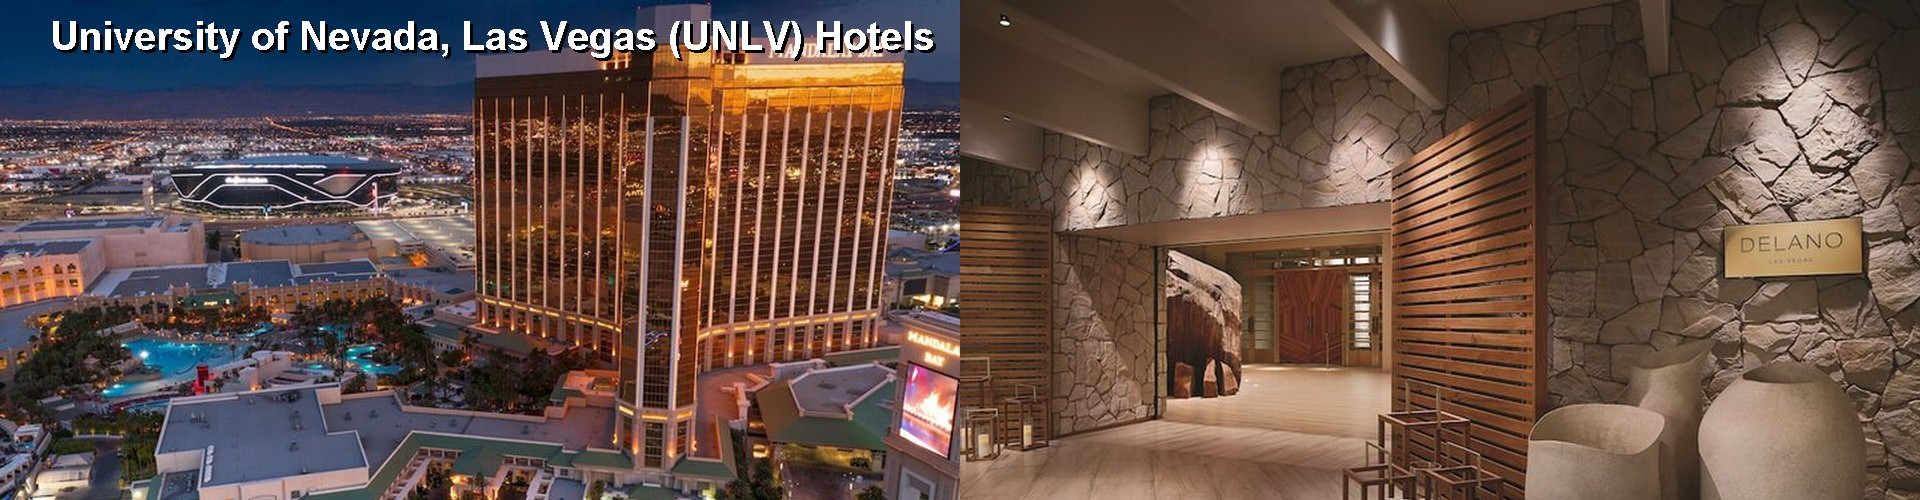 5 Best Hotels near University of Nevada, Las Vegas (UNLV)